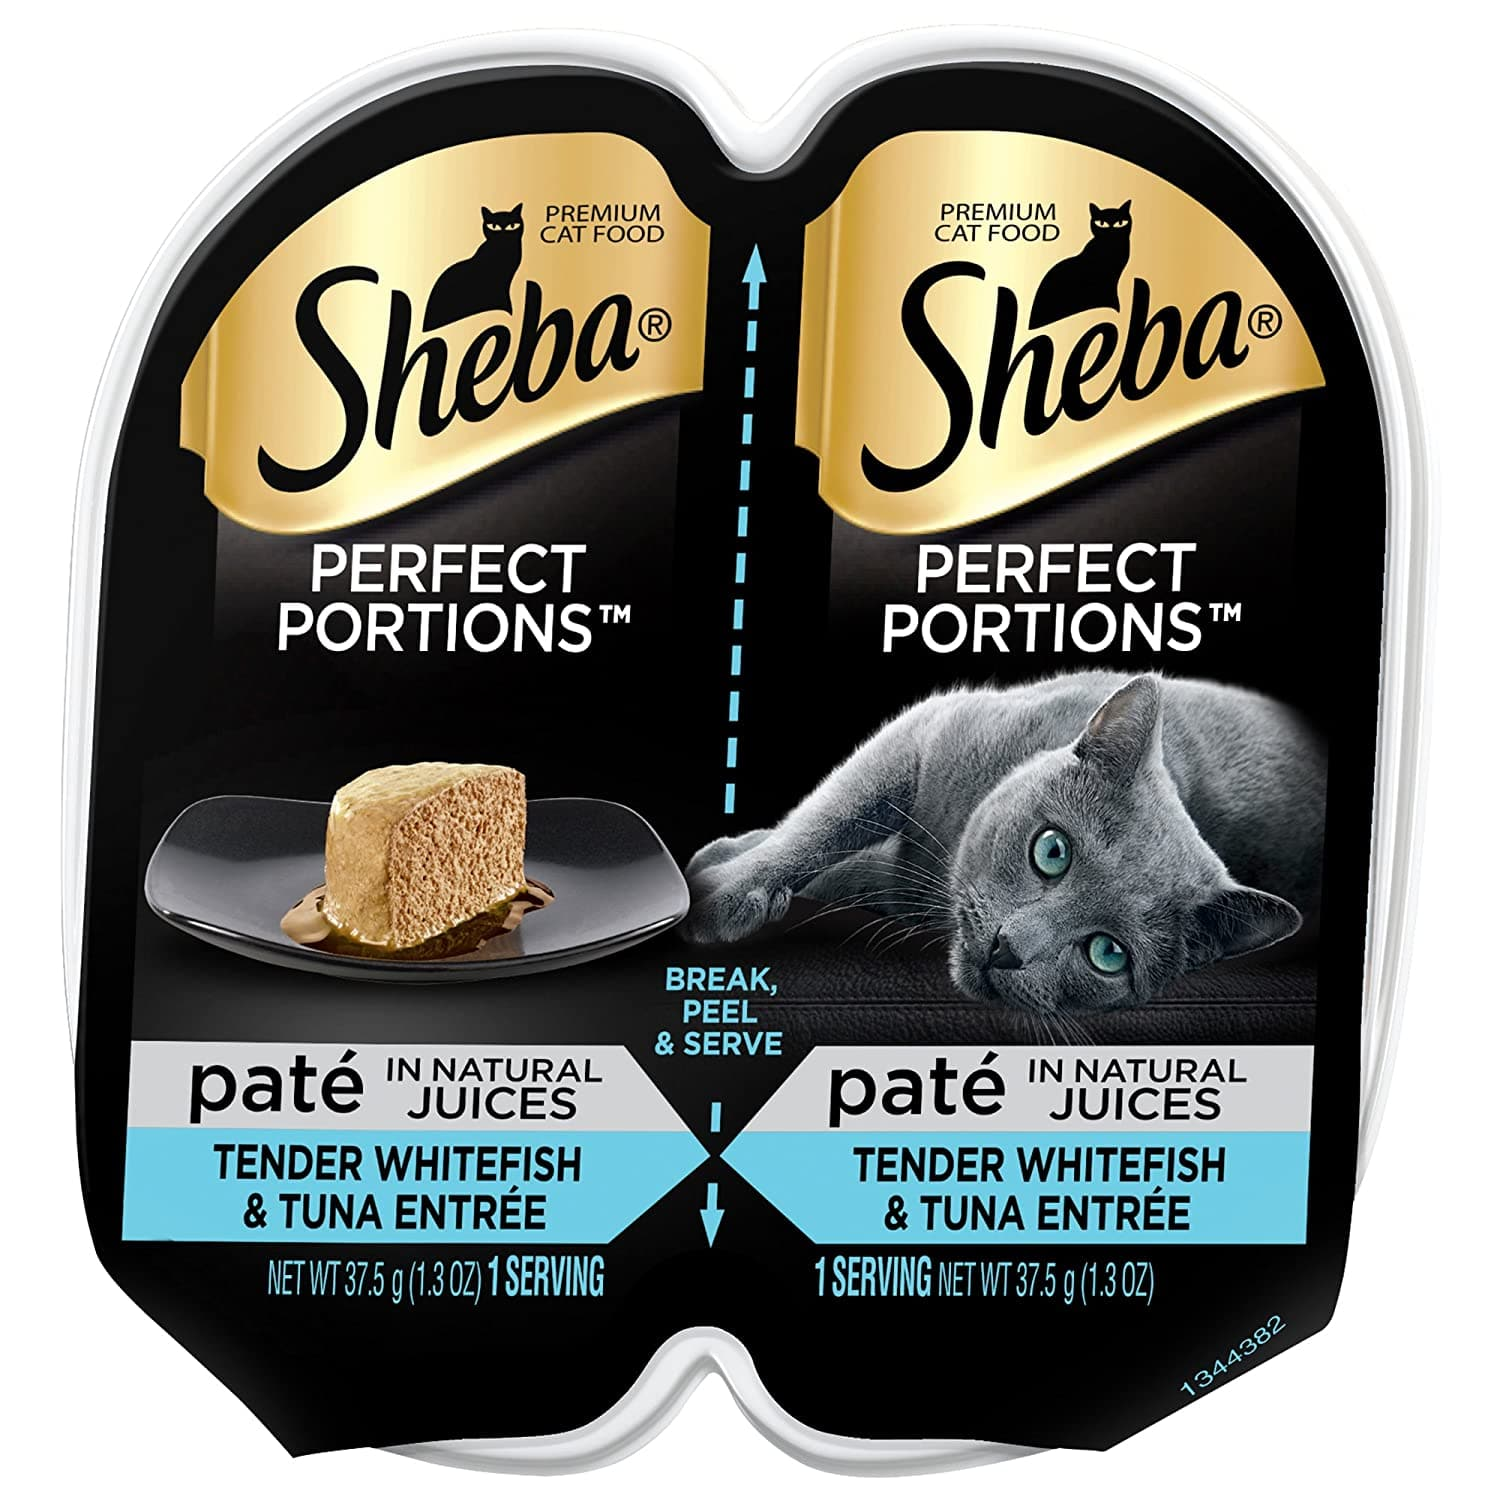 Sheba Whitefish & Tuna 48 servings (24 twin packs) $8.16 +tax after 10% s/s and 50% coupon (YMMV) savings